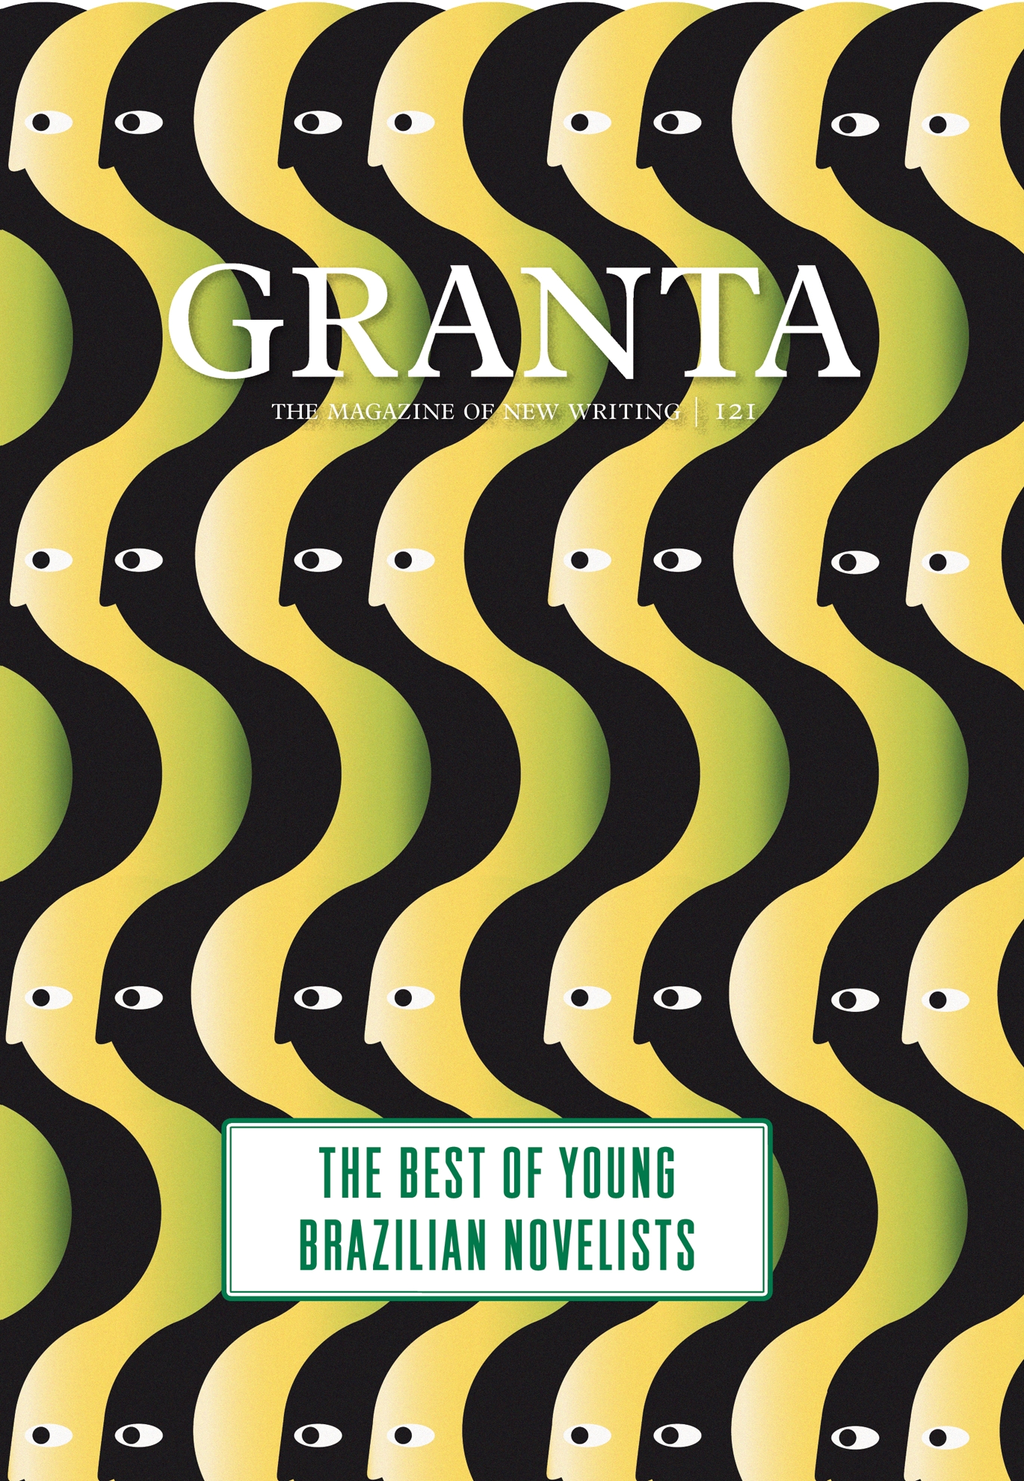 Granta 121 Best of Young Brazilian Novelists